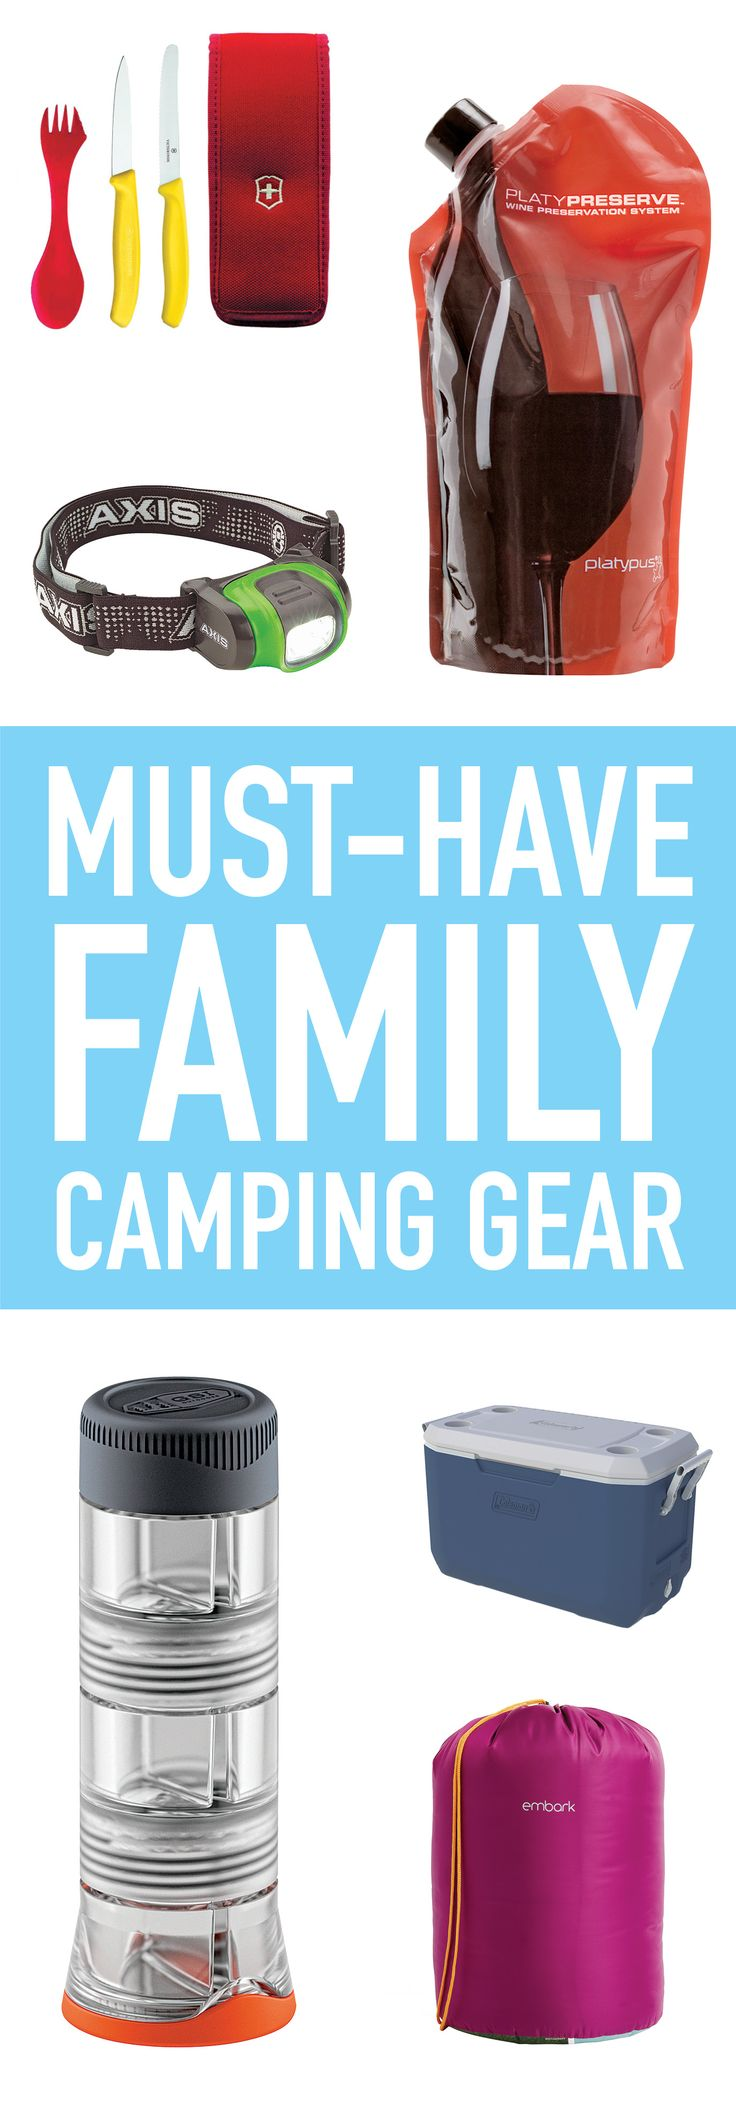 Today's Parent rounds up the best camping gear of the season whether your style is rugged or relaxed.